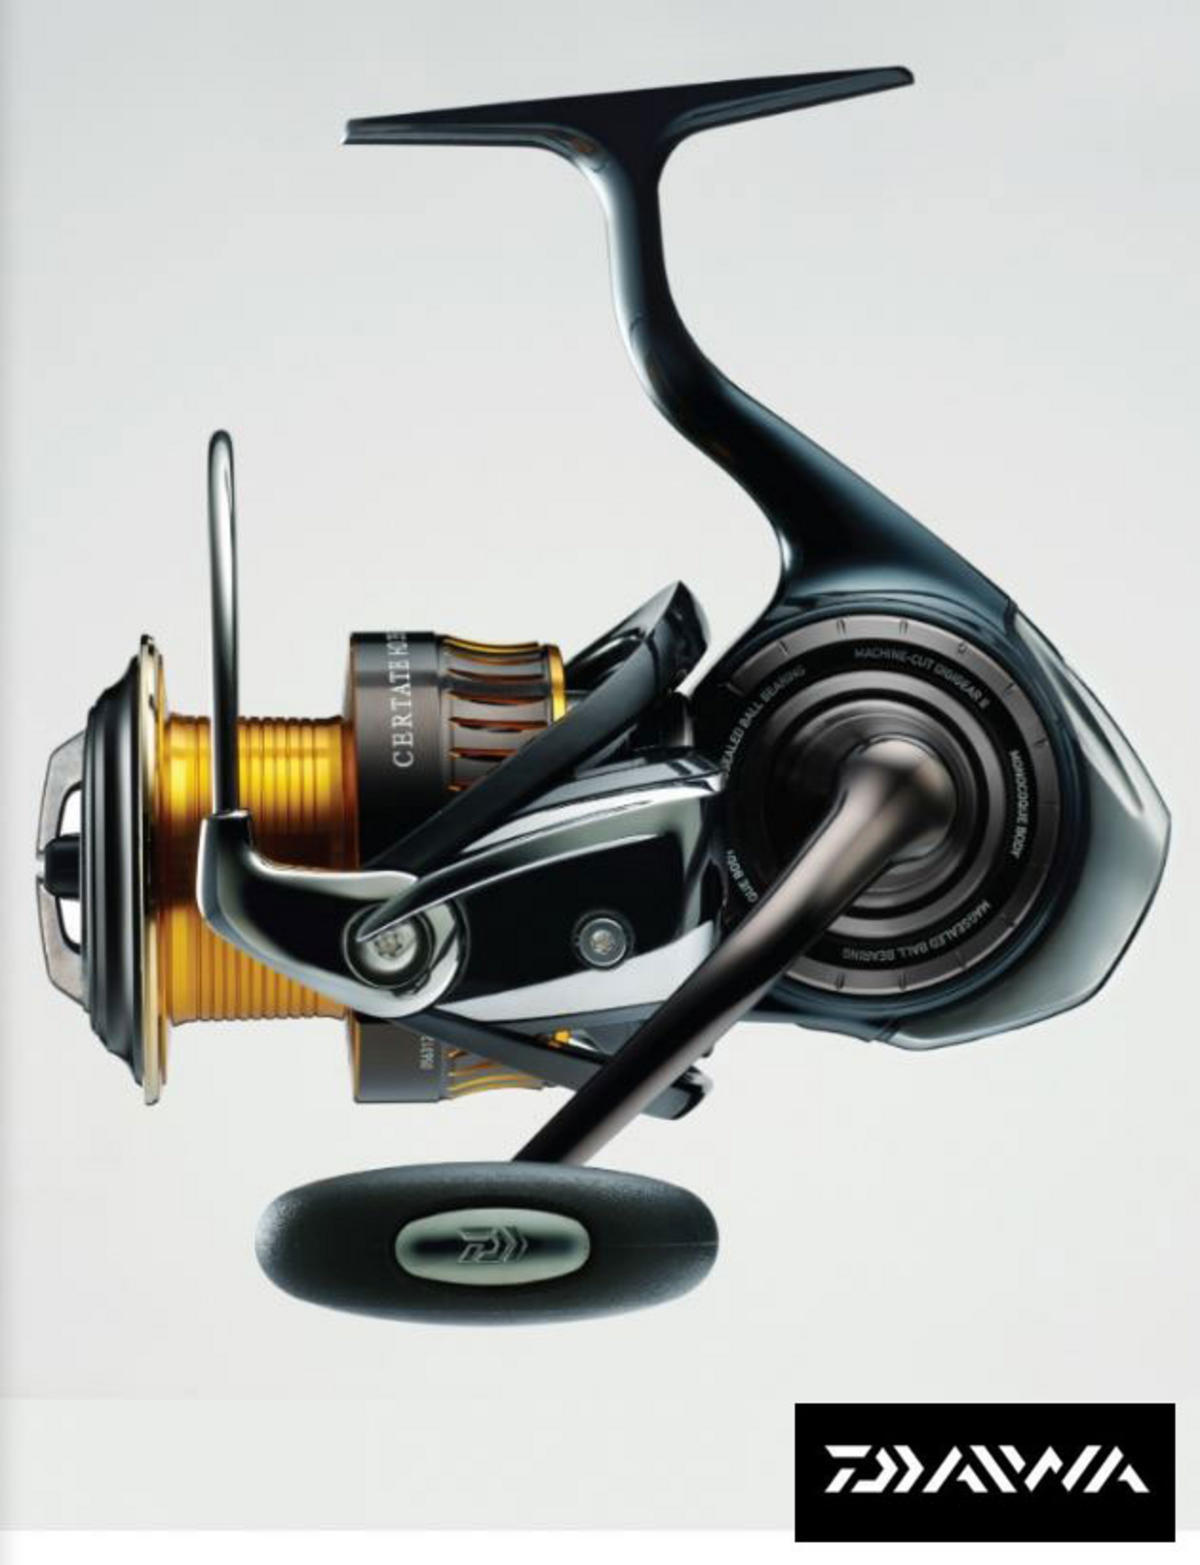 New Daiwa 16 Certate 2500 Spinning Reel Model No. 16 CERTATE 2500